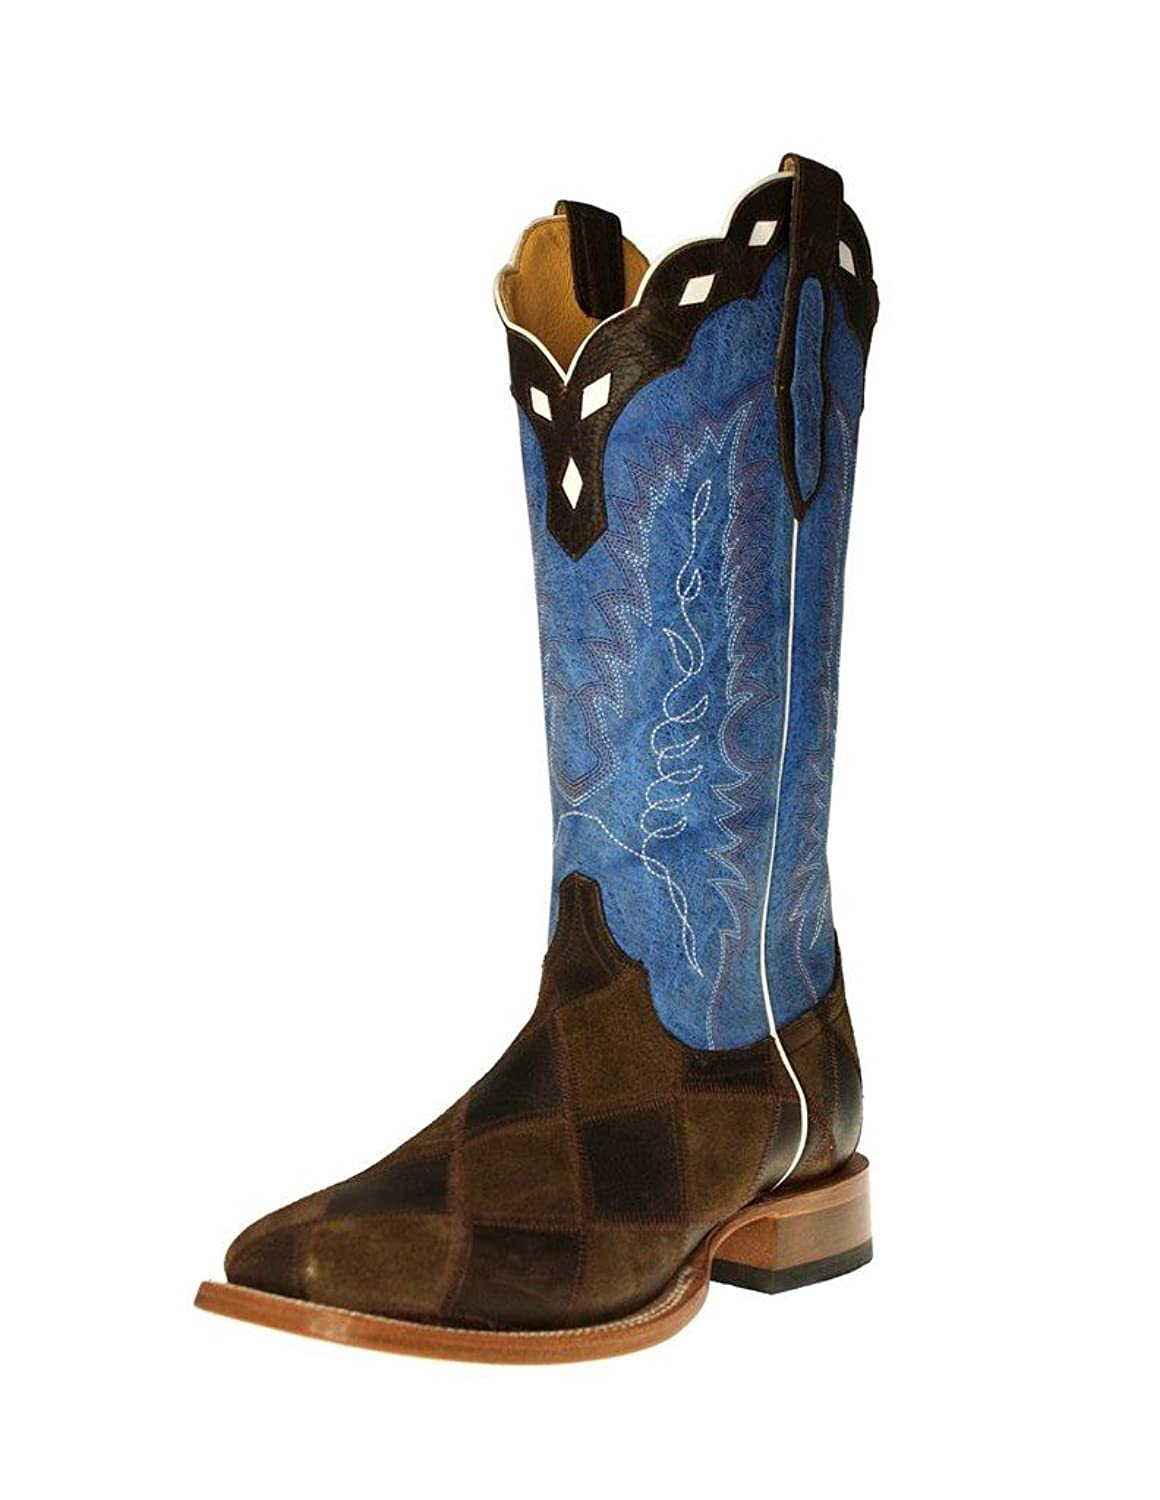 Cinch Western Boots Mens Leather Square Dark Brown Royal Blue CFM613